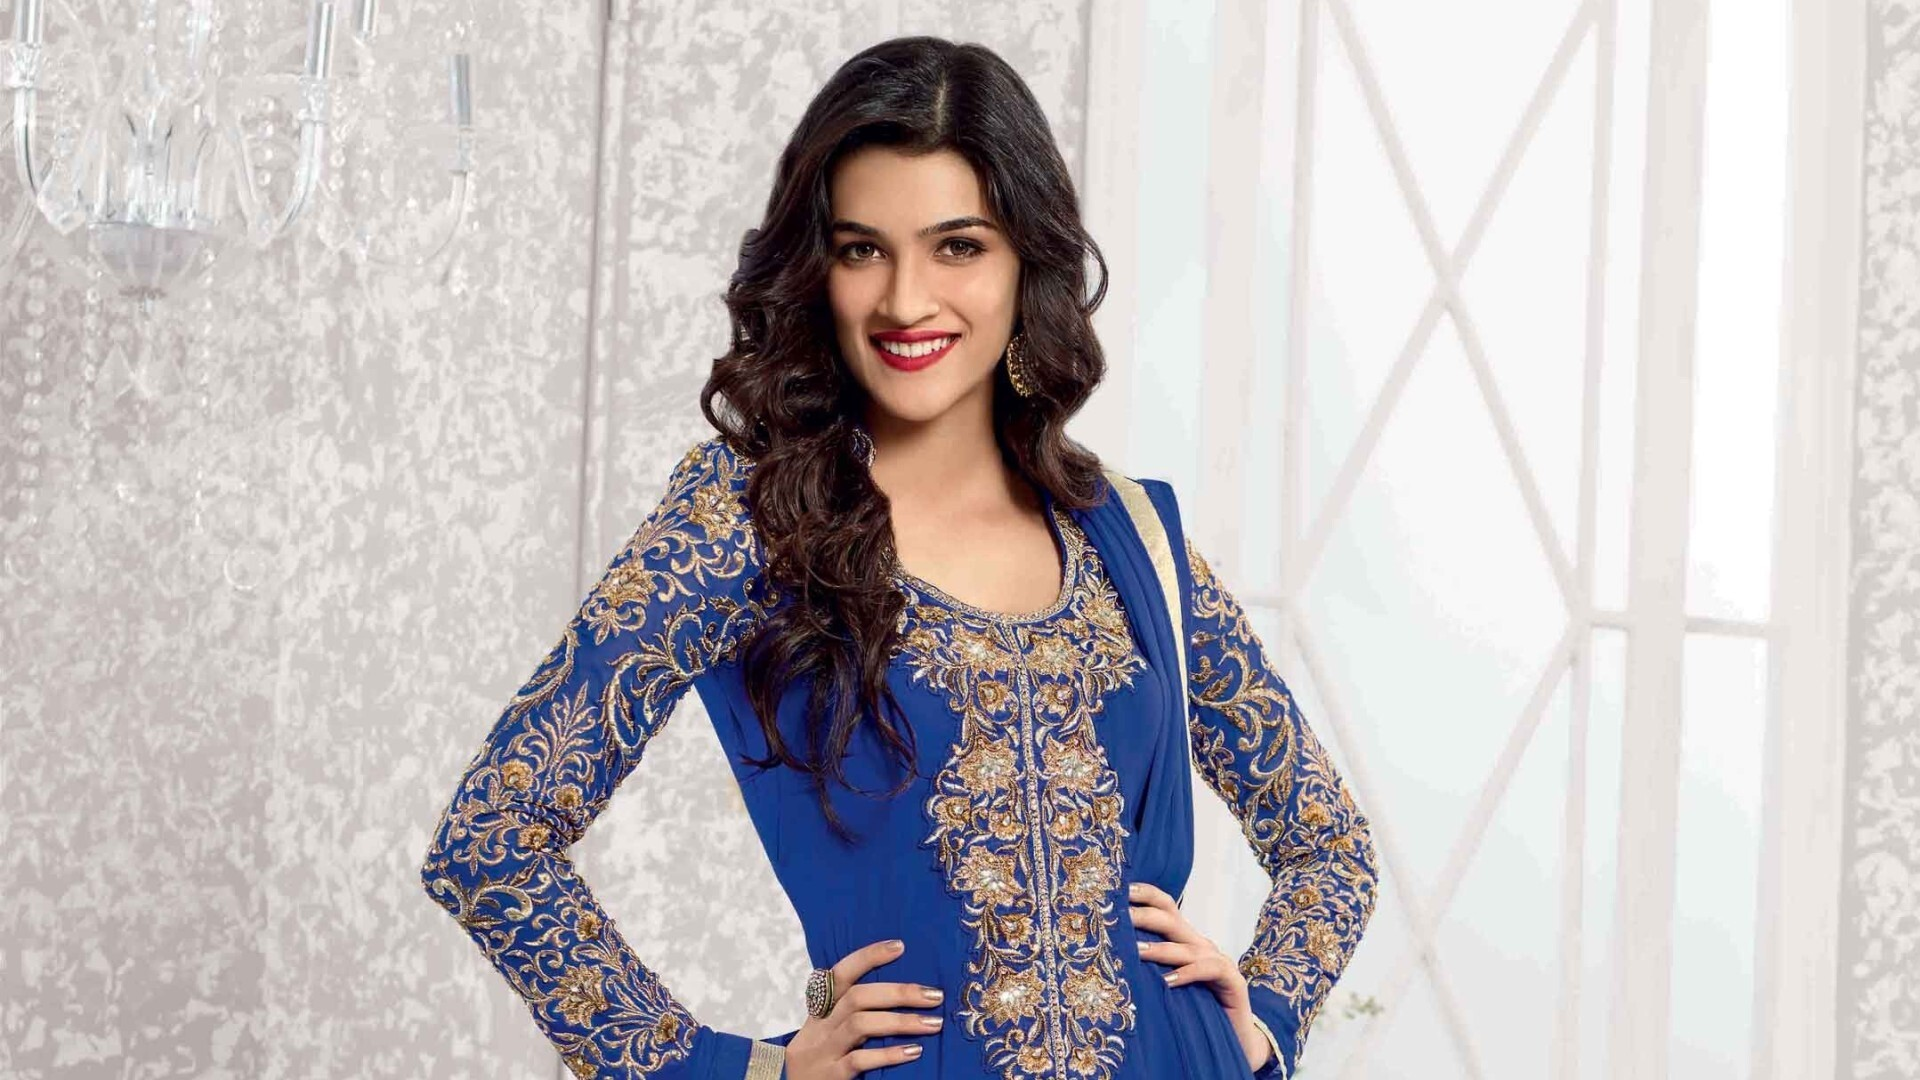 Kriti Sanon Hd Wallpapers Images Pictures Photos Download